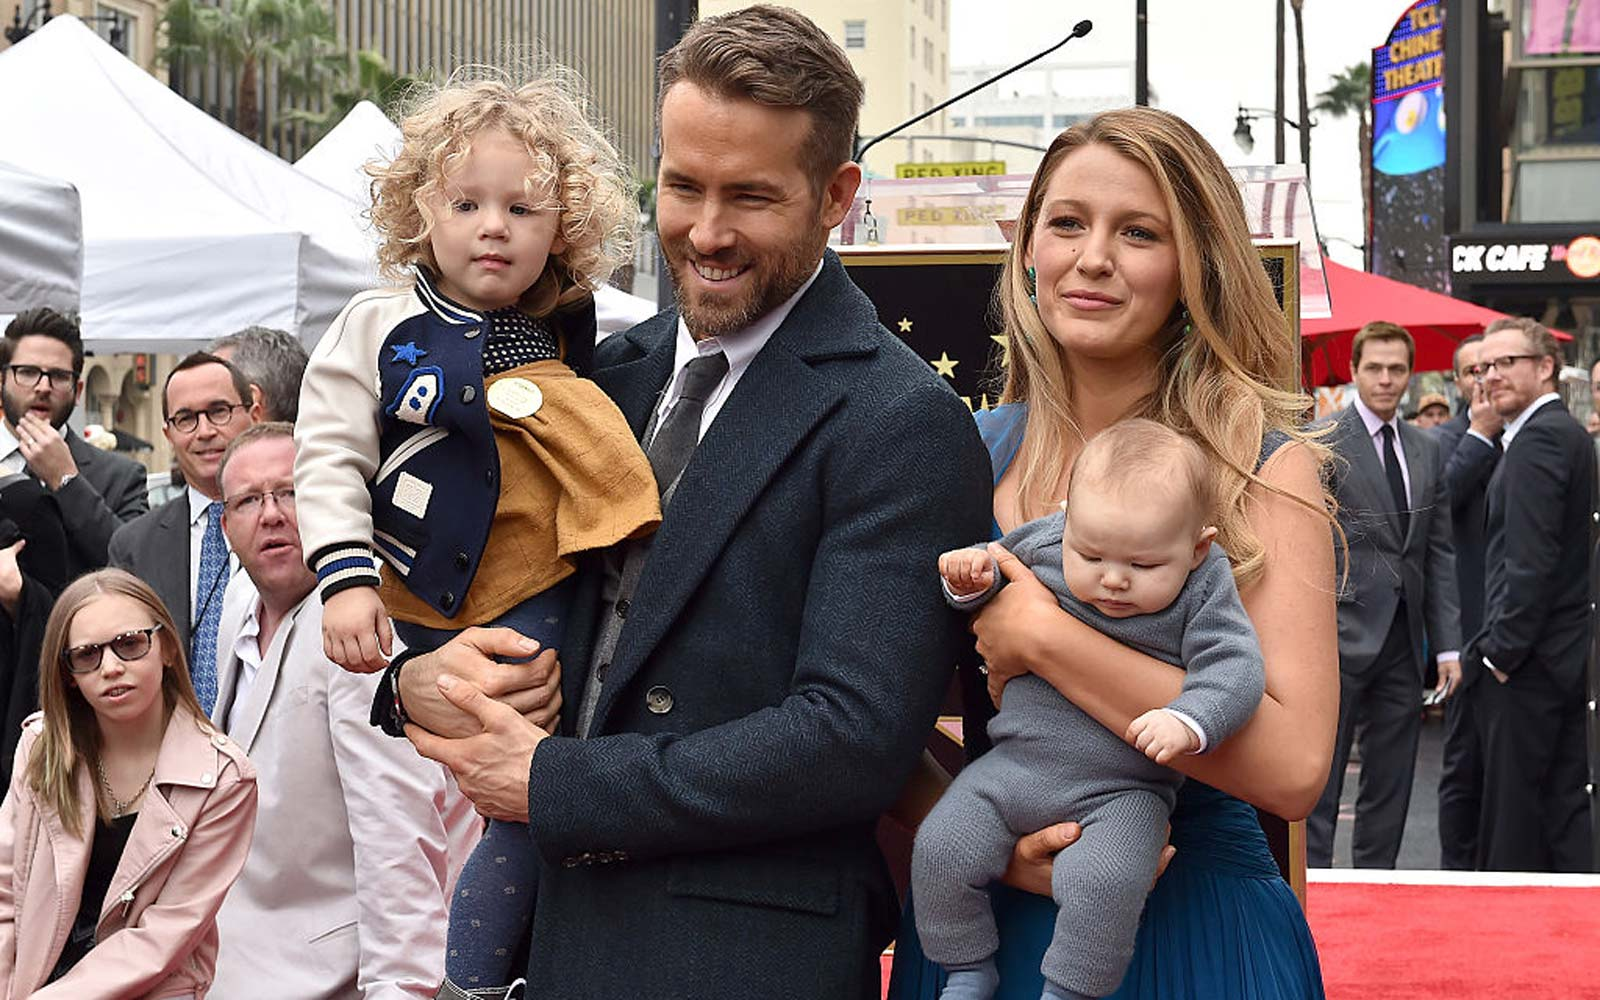 Ryan Reynolds Jokes About Traveling With Two Kids: I 'Long for the Sweet Release of Death'